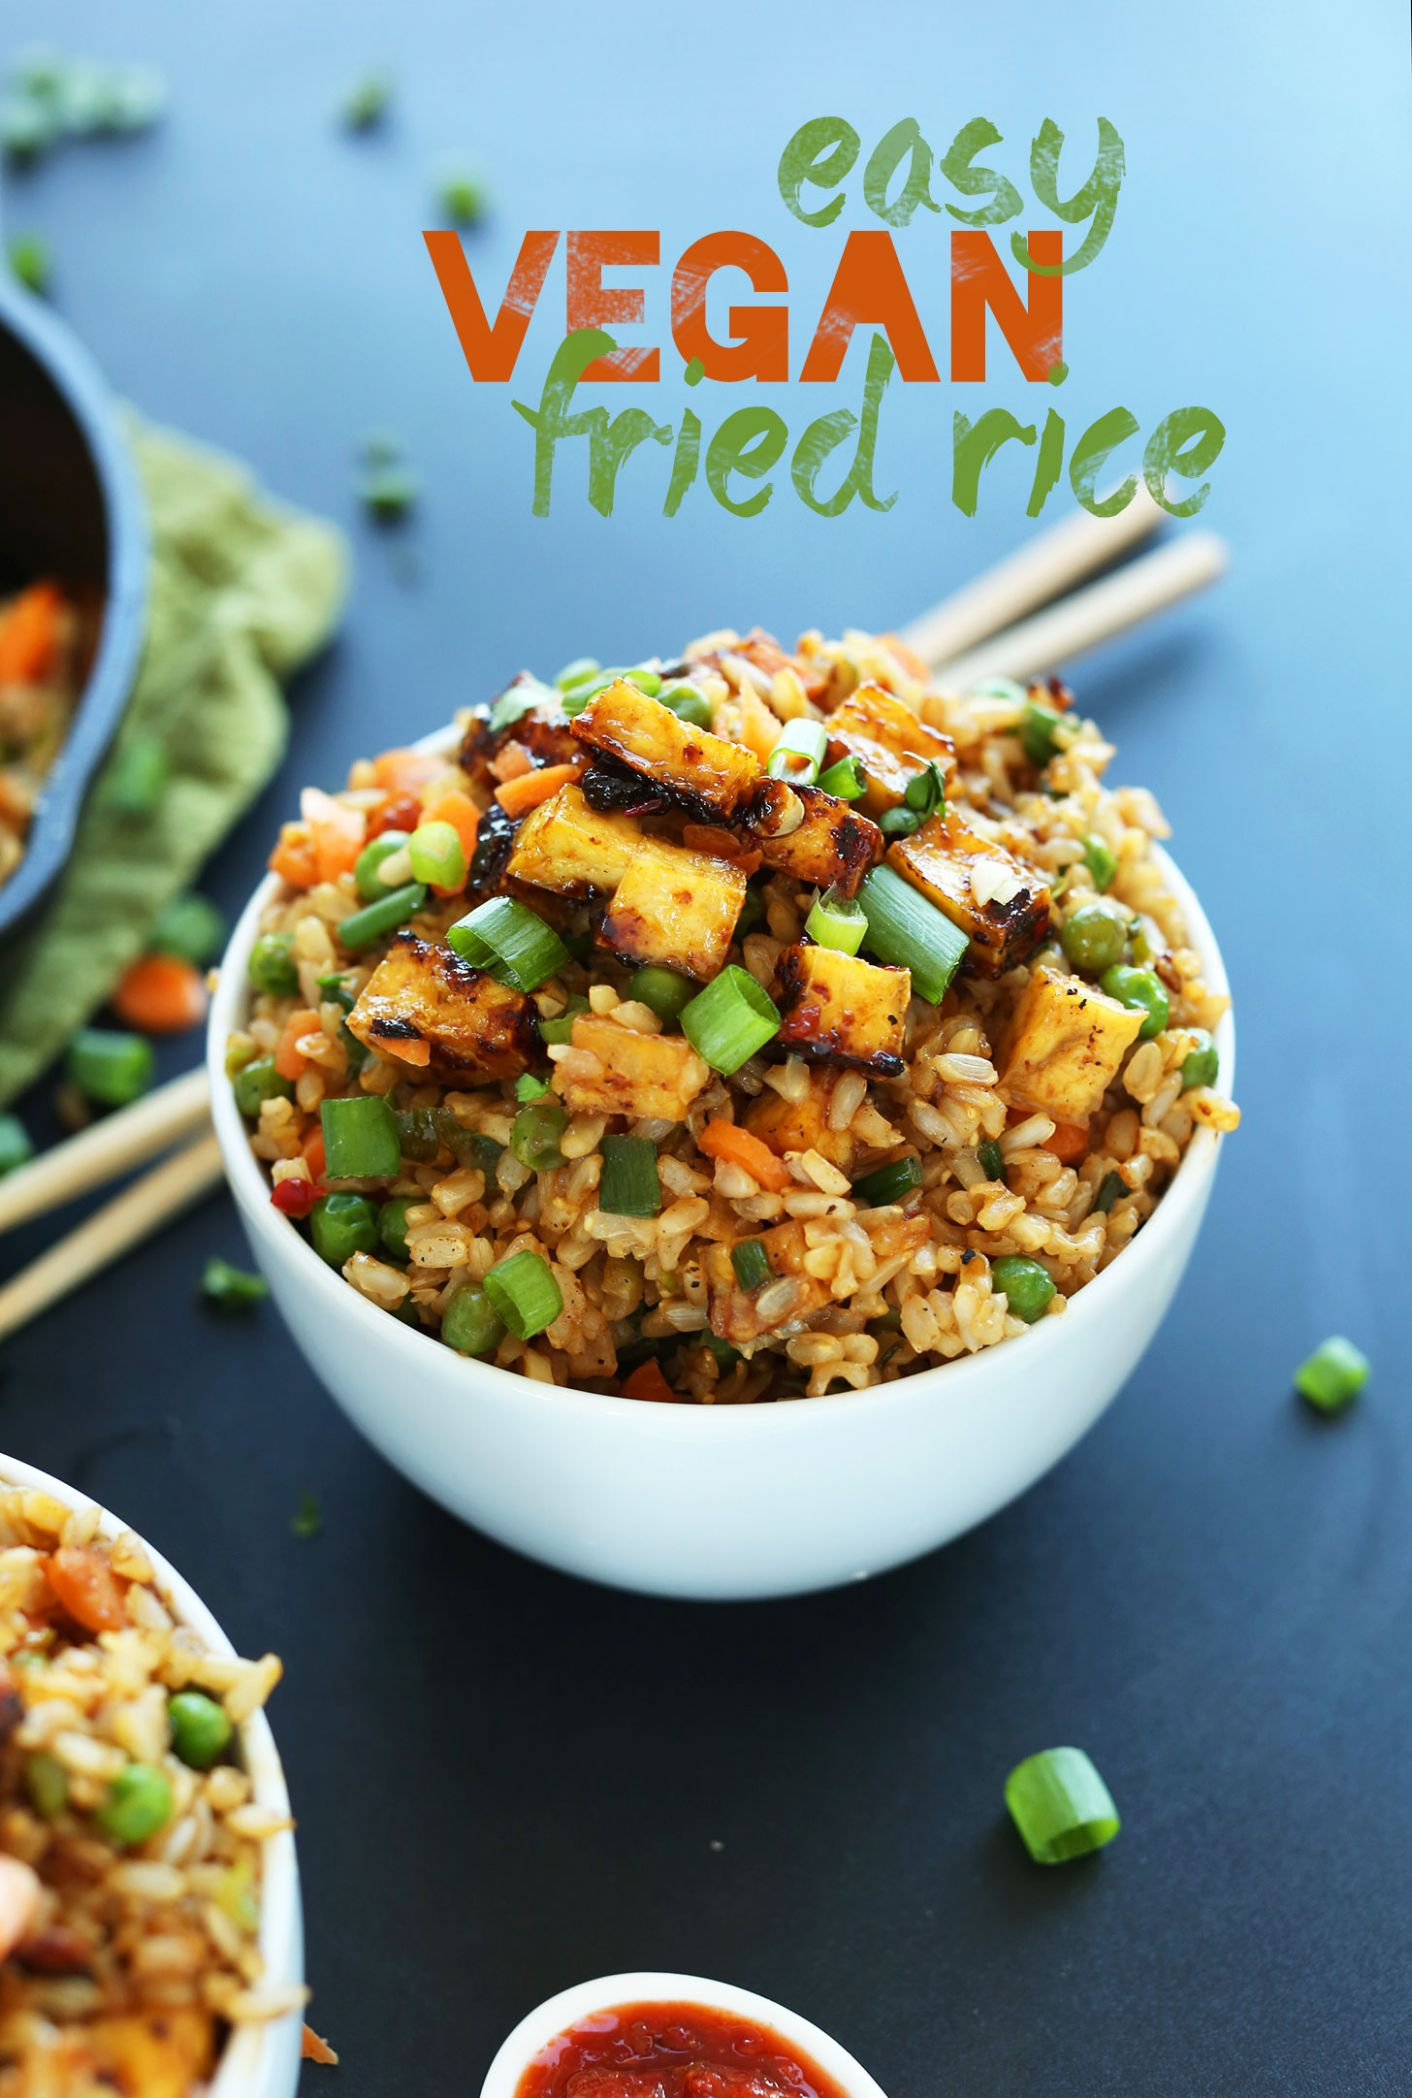 Easy Vegan Fried Rice - Rice Recipes Veg